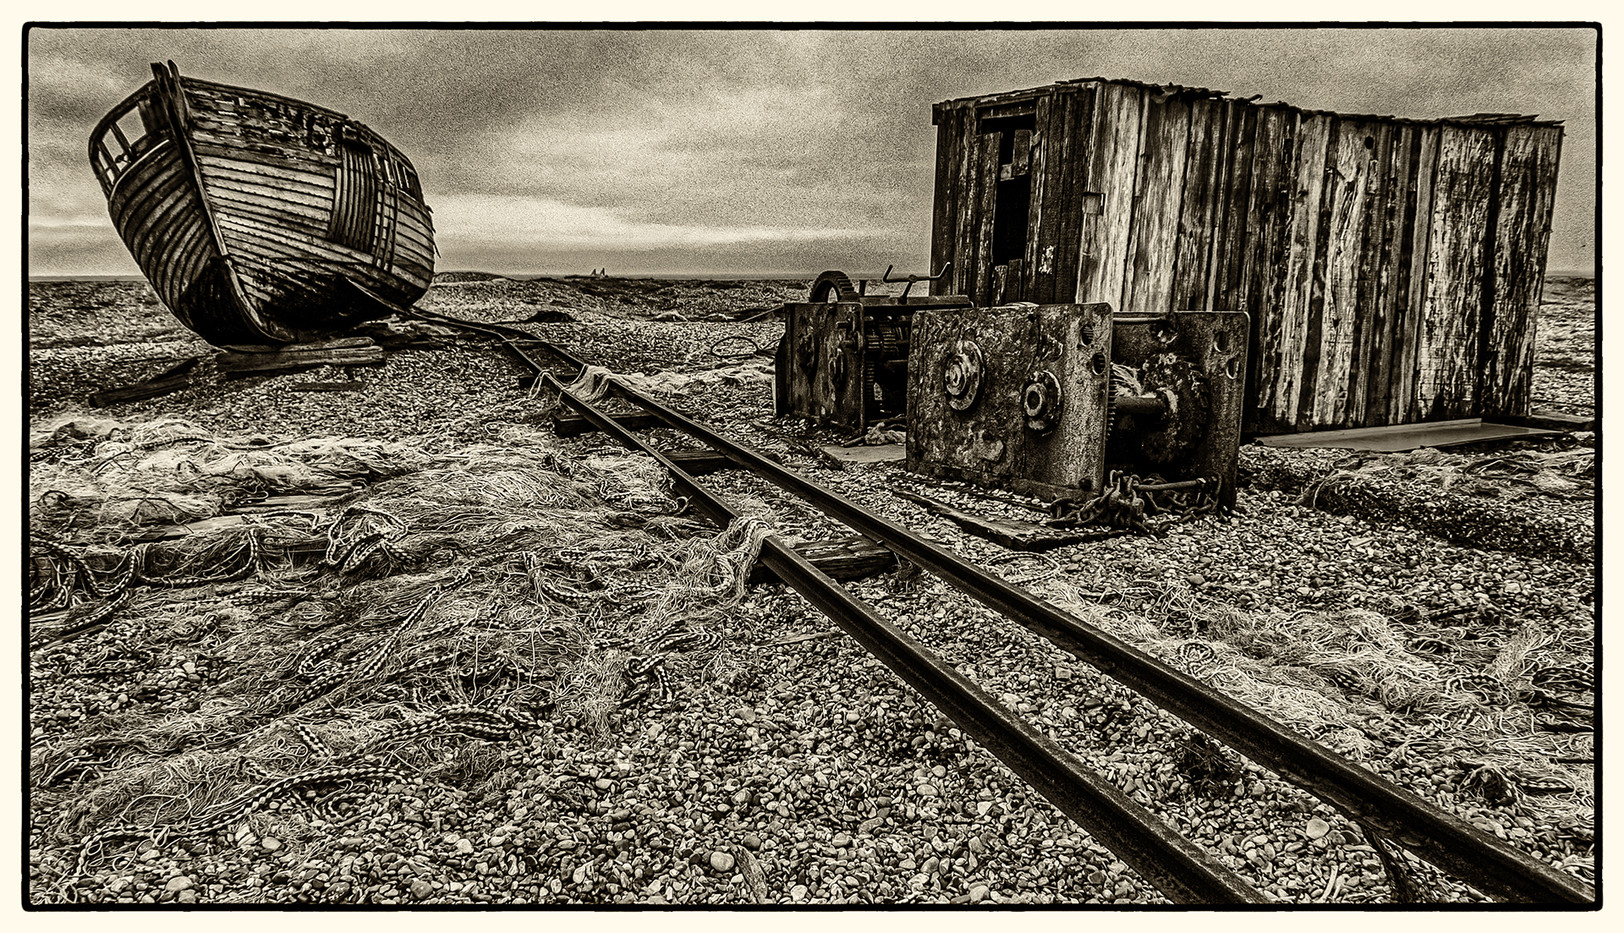 18 DESOLATE DUNGENESS by Mick Dudley